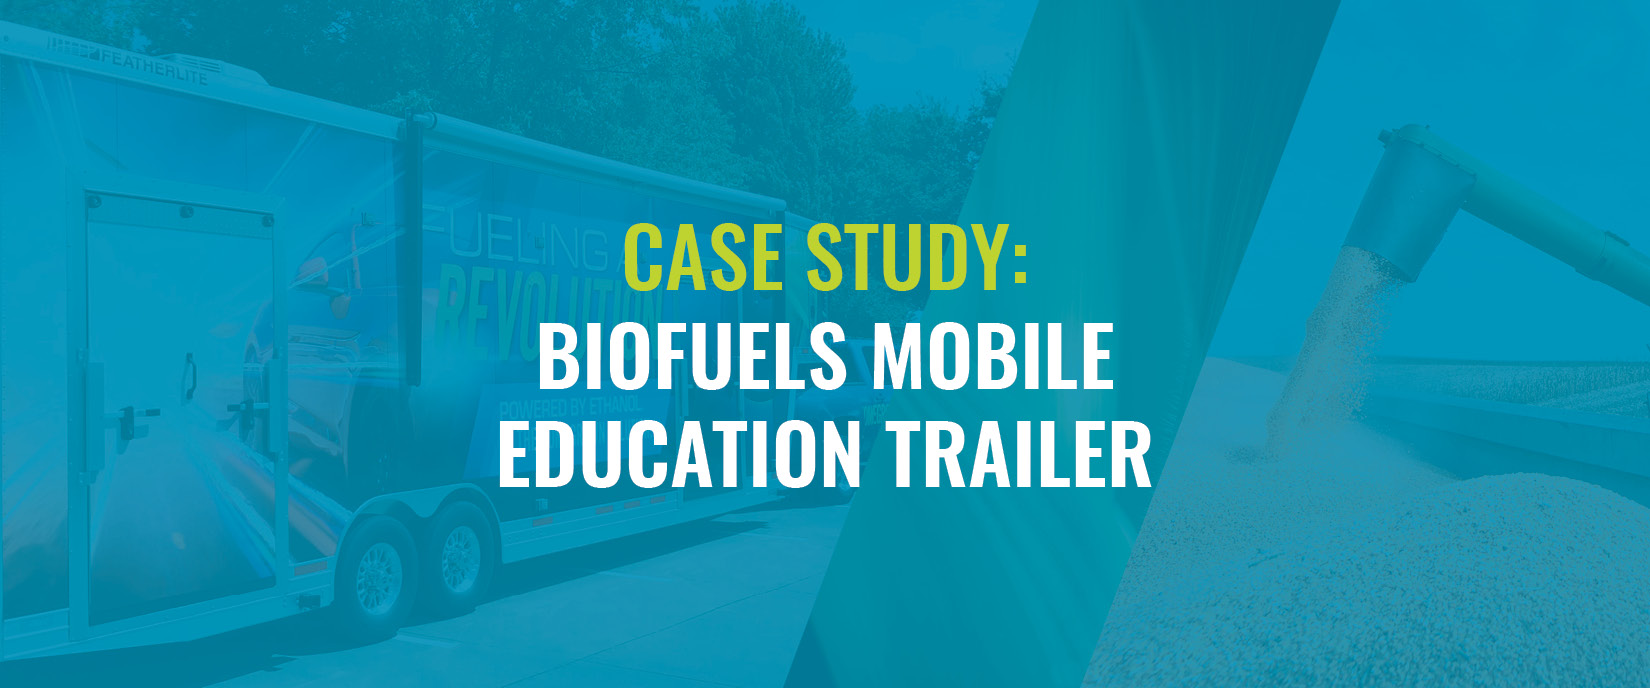 Case Study: Biofuels Mobile Education Trailer